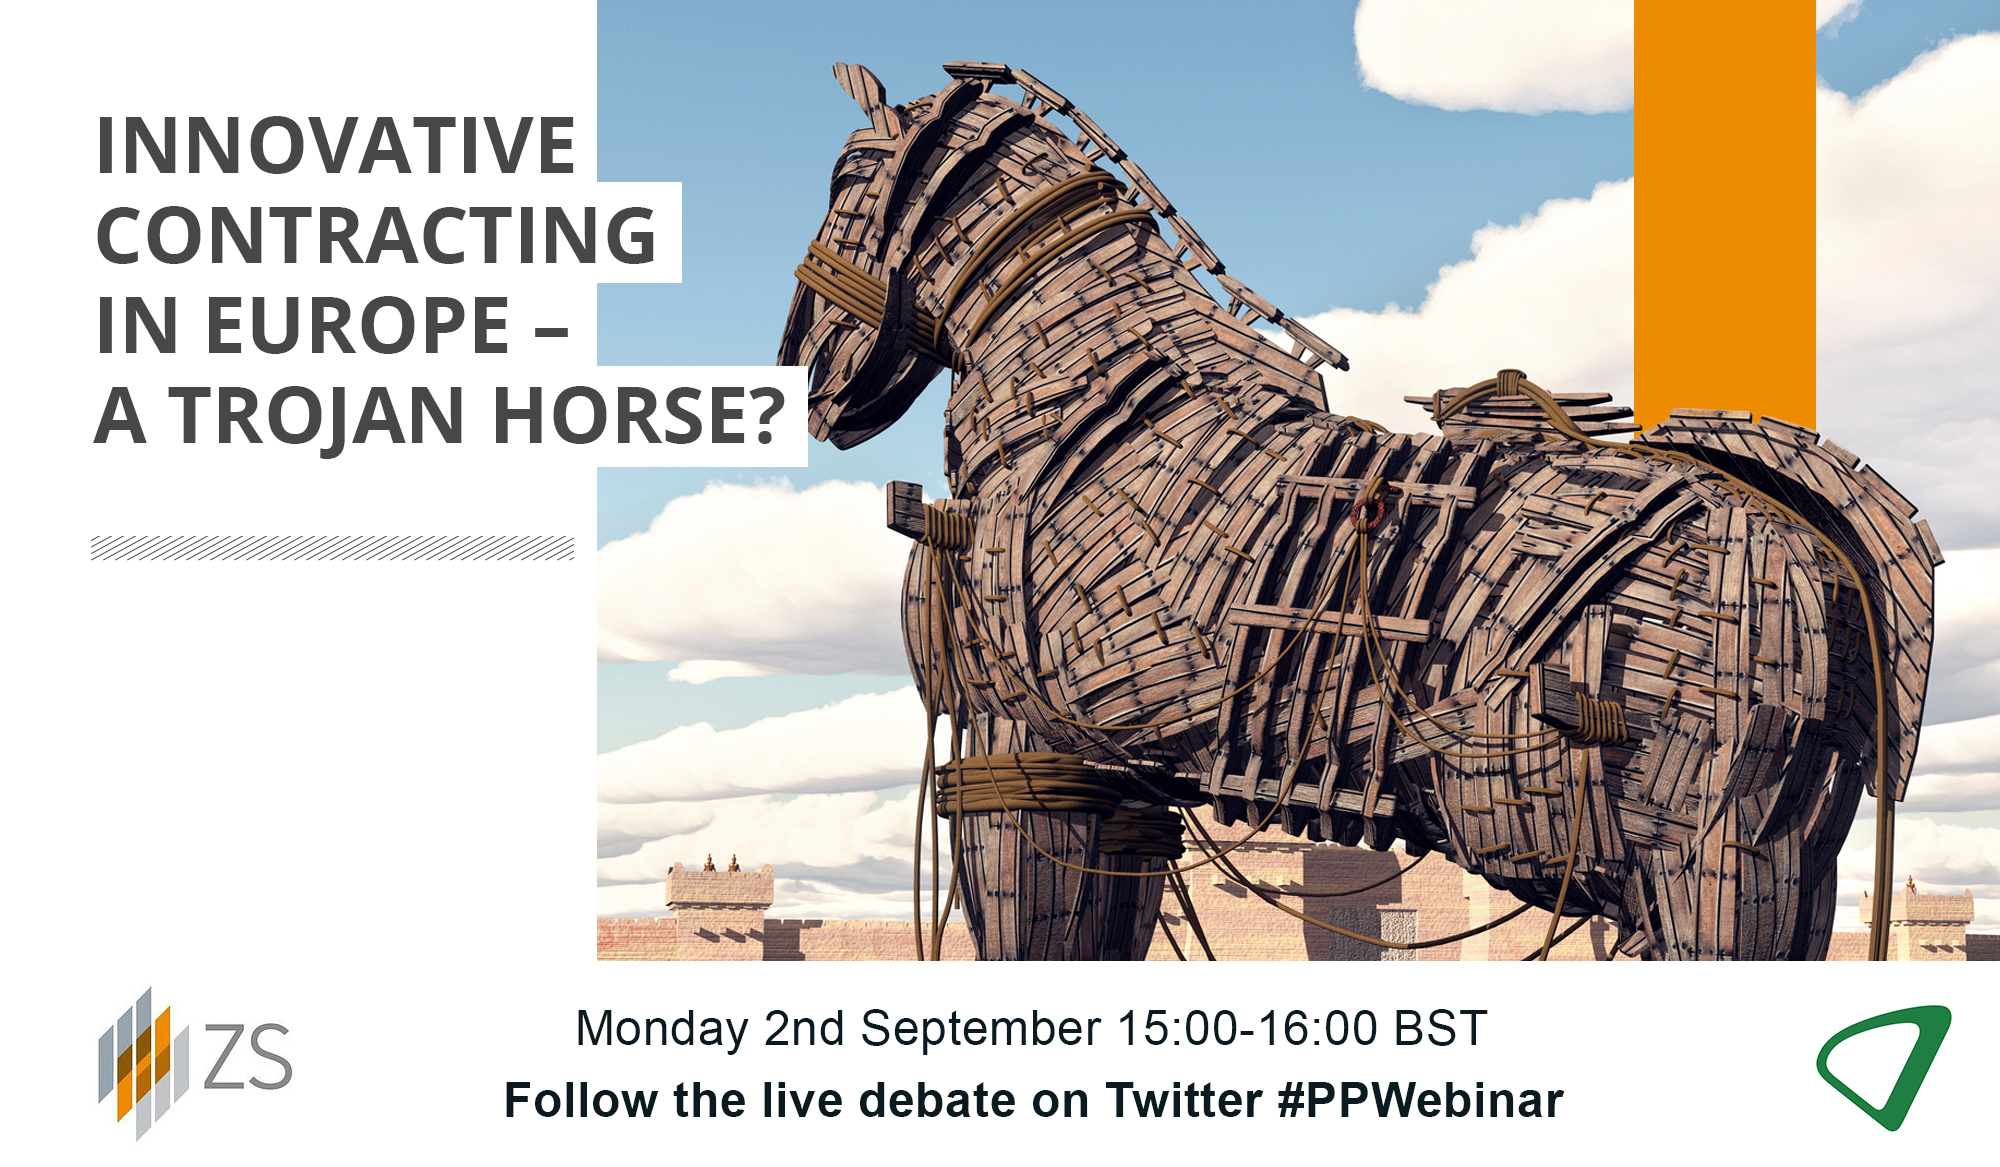 Innovative contracting in Europe – a Trojan horse